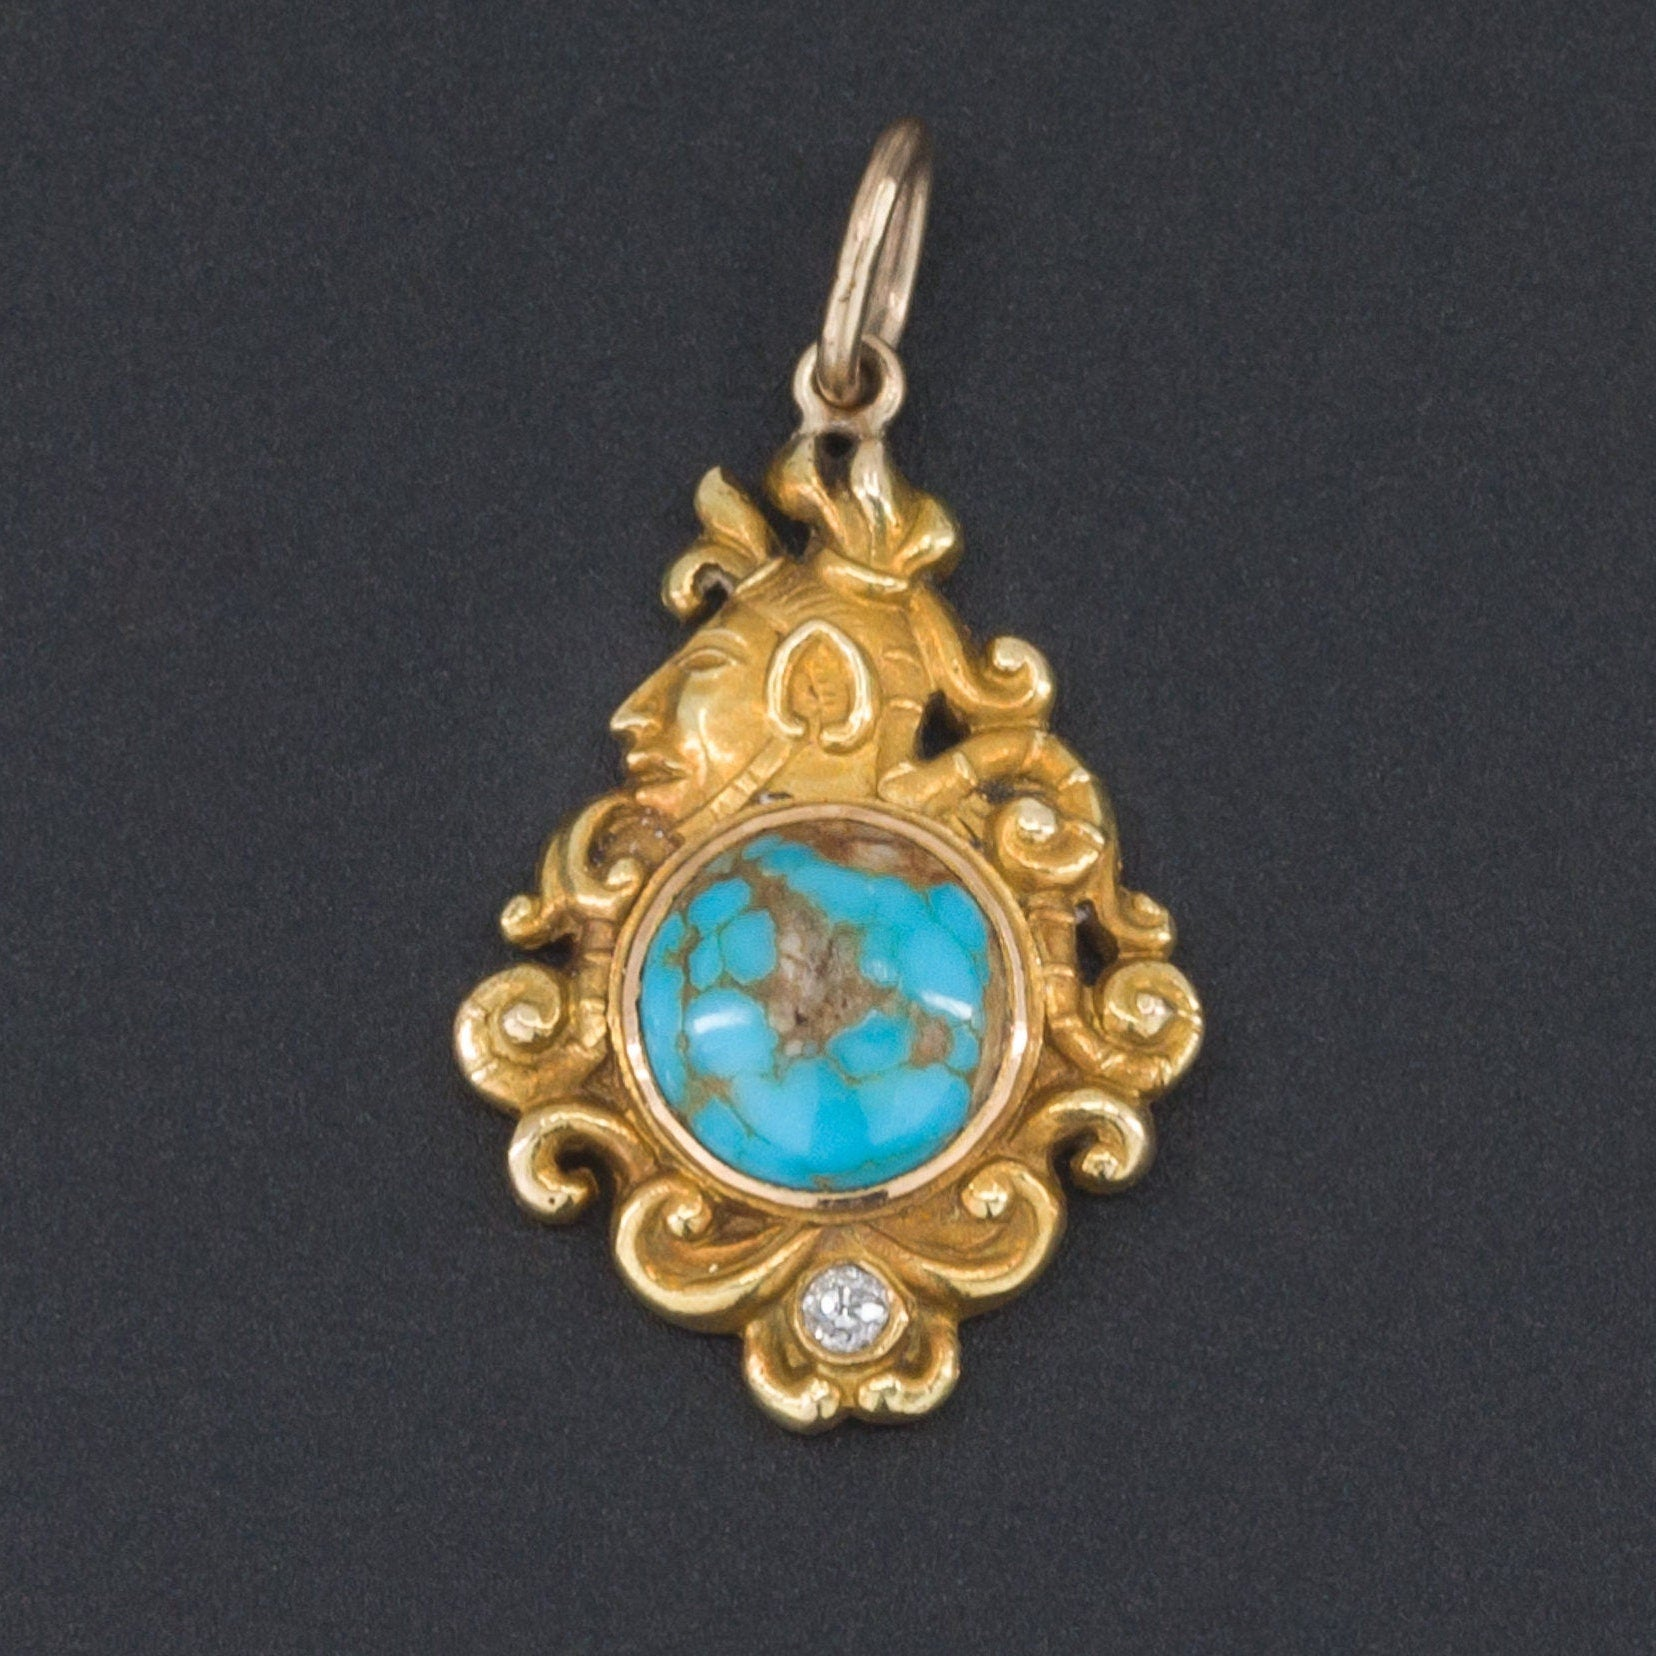 Antique Turquoise Pendant | Antique Pin Conversion | 14k Gold Pendant | Native Pendant with Turquoise & Diamond